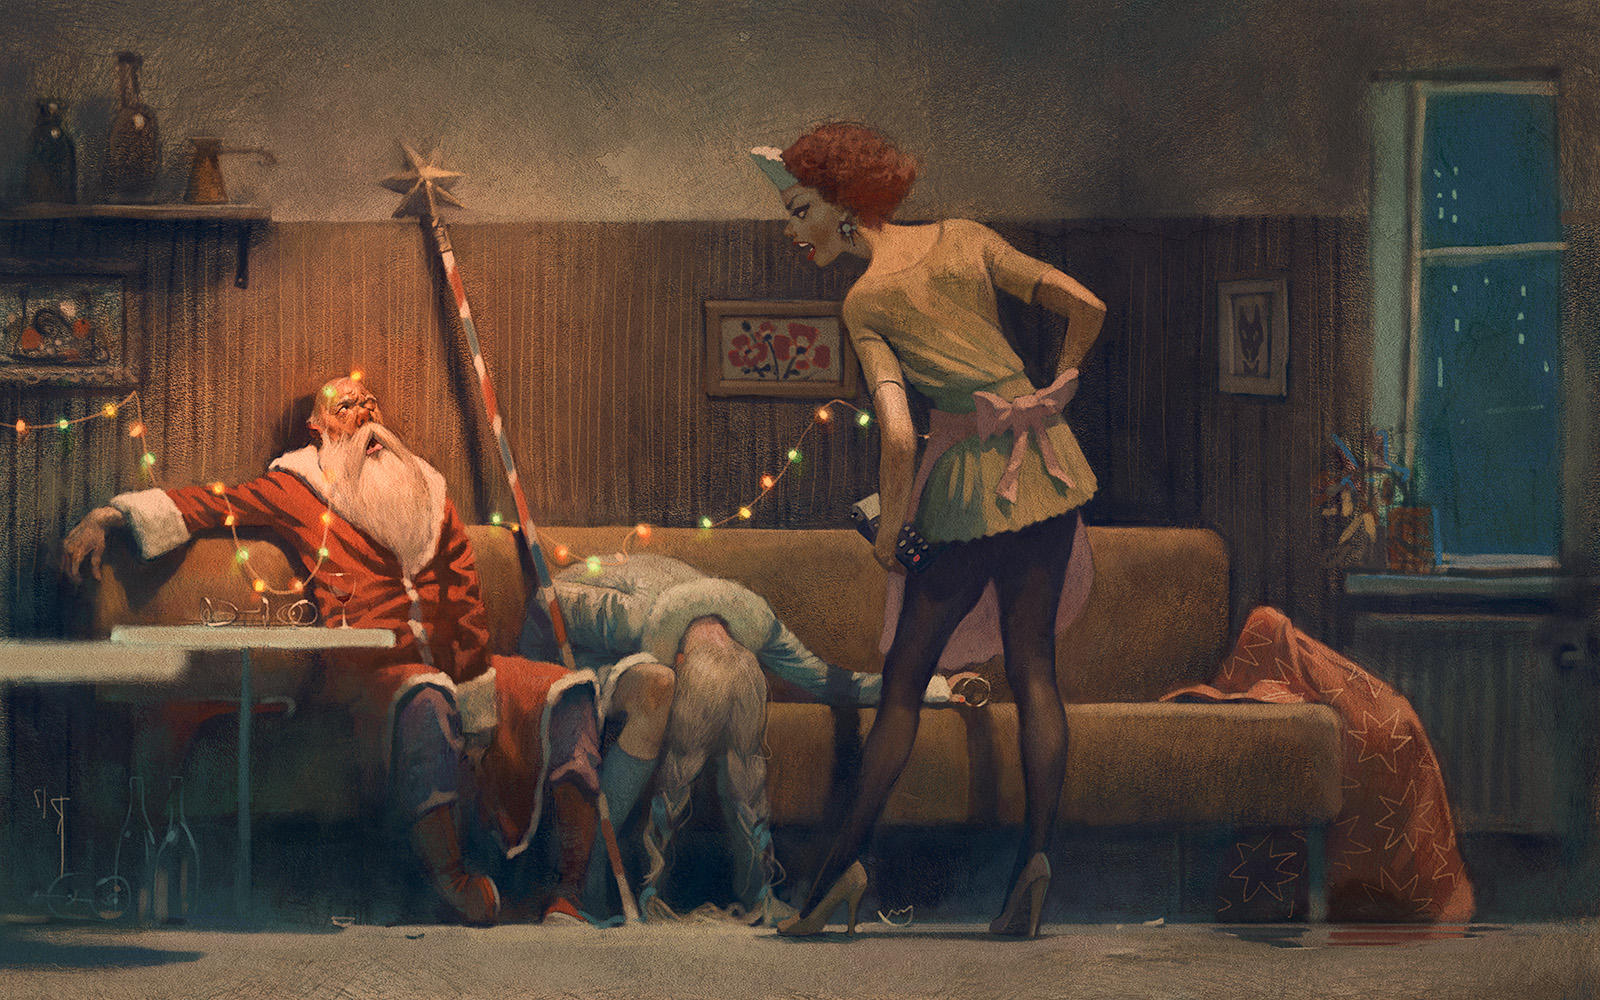 after party by Waldemar-Kazak